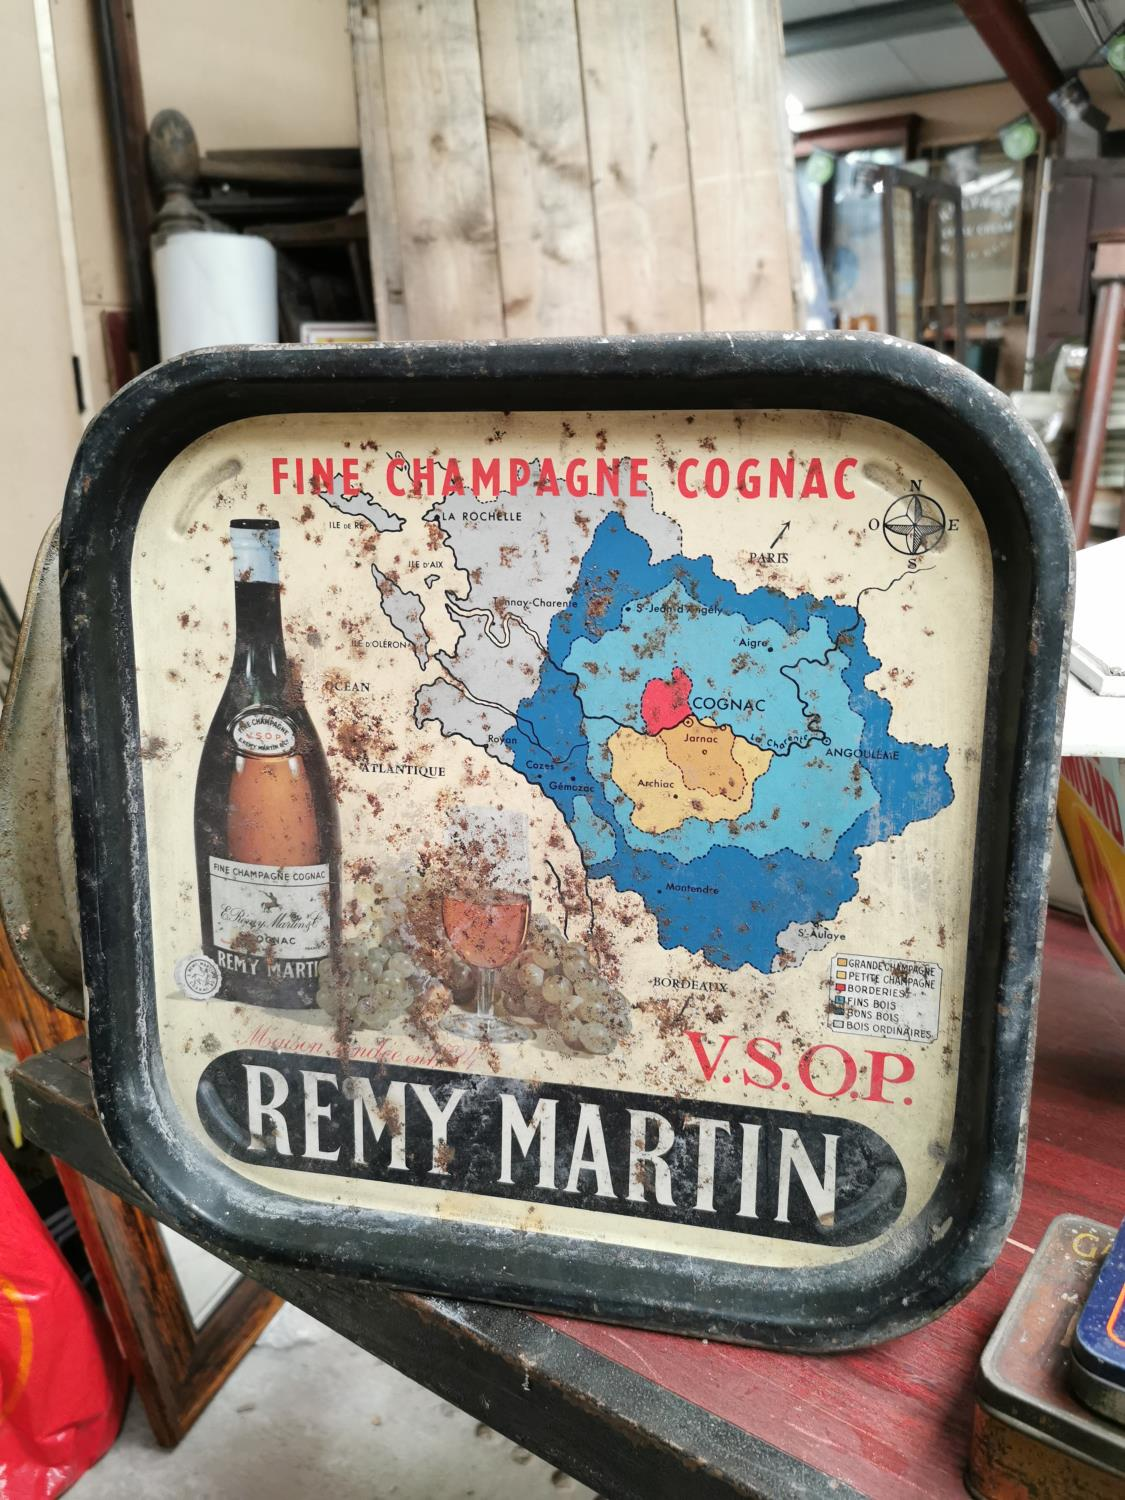 Remy Martin advertising drinks tray.